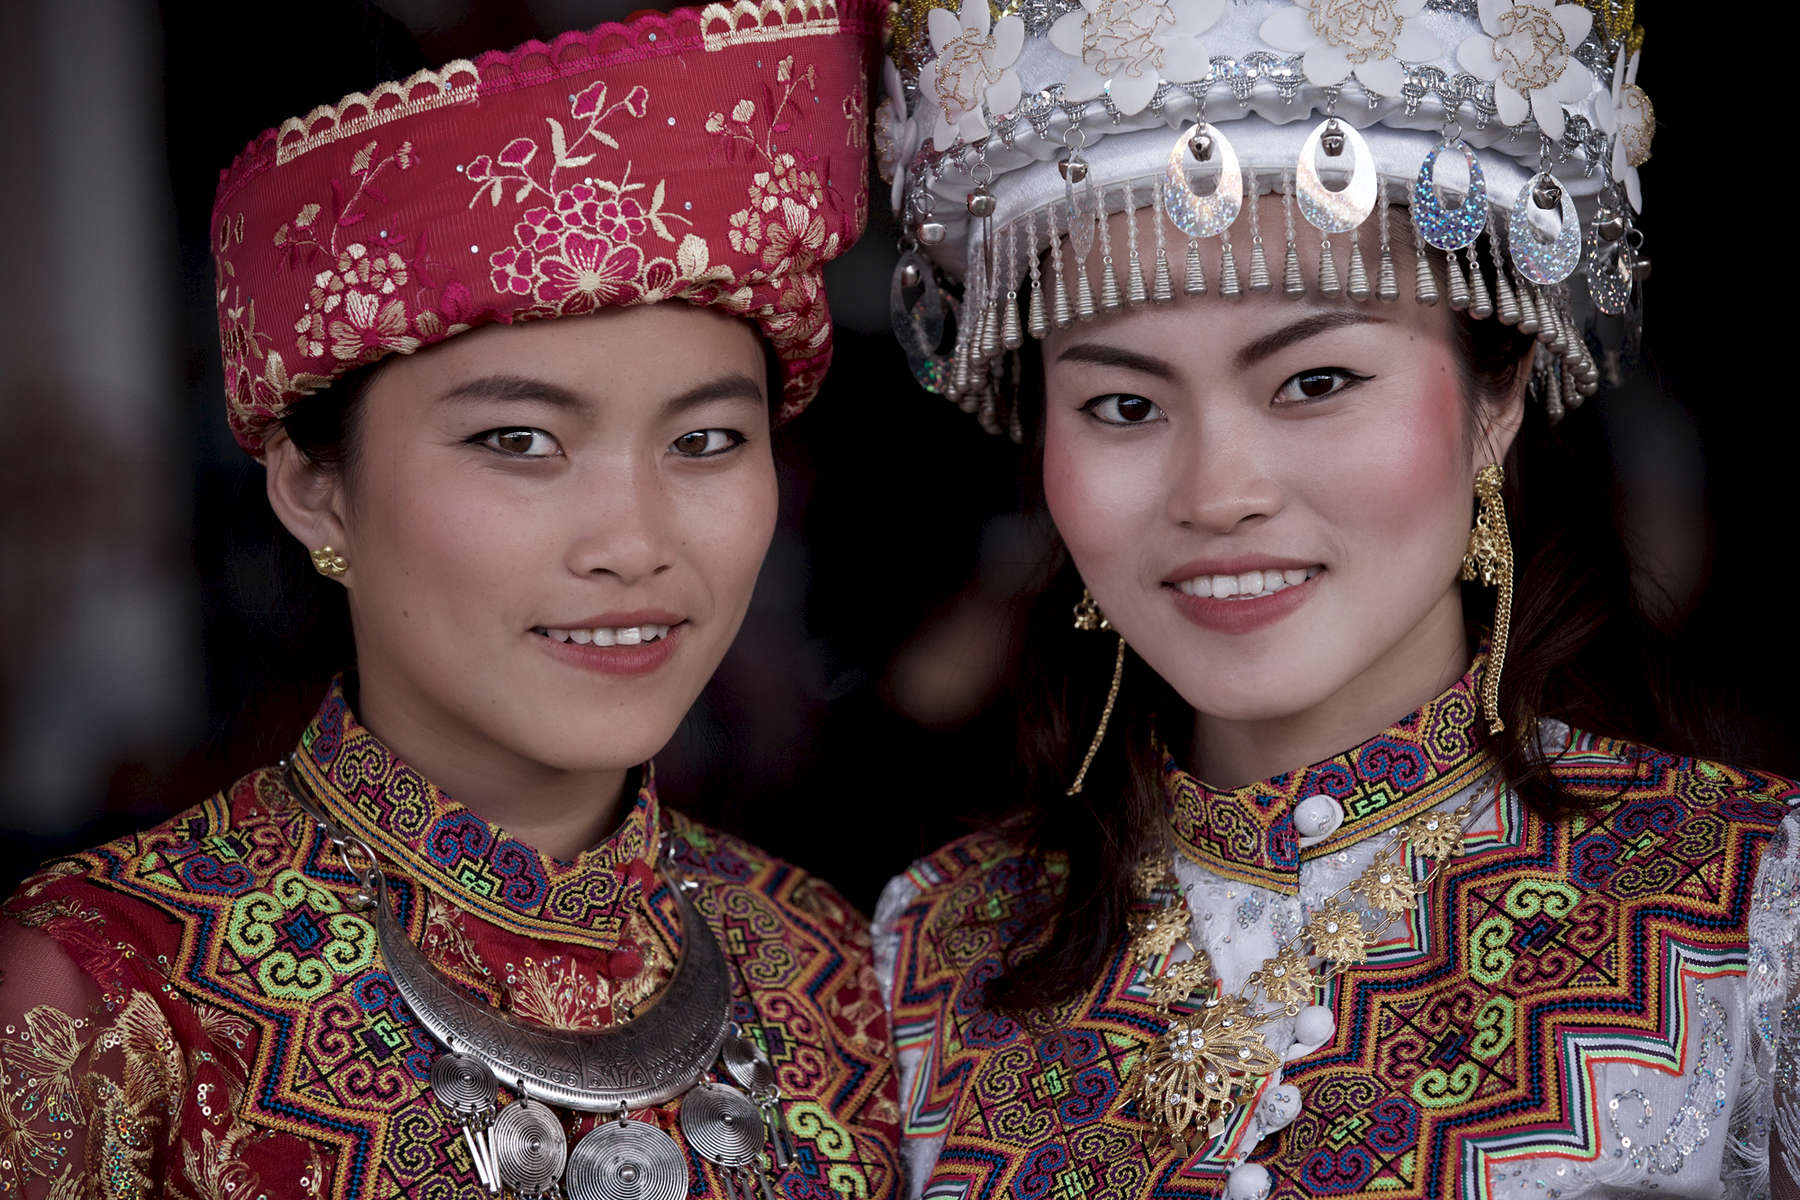 laos-hmong-new-year-ethnic-minority-photo-by-cyril-eberle-CEB_6623-web